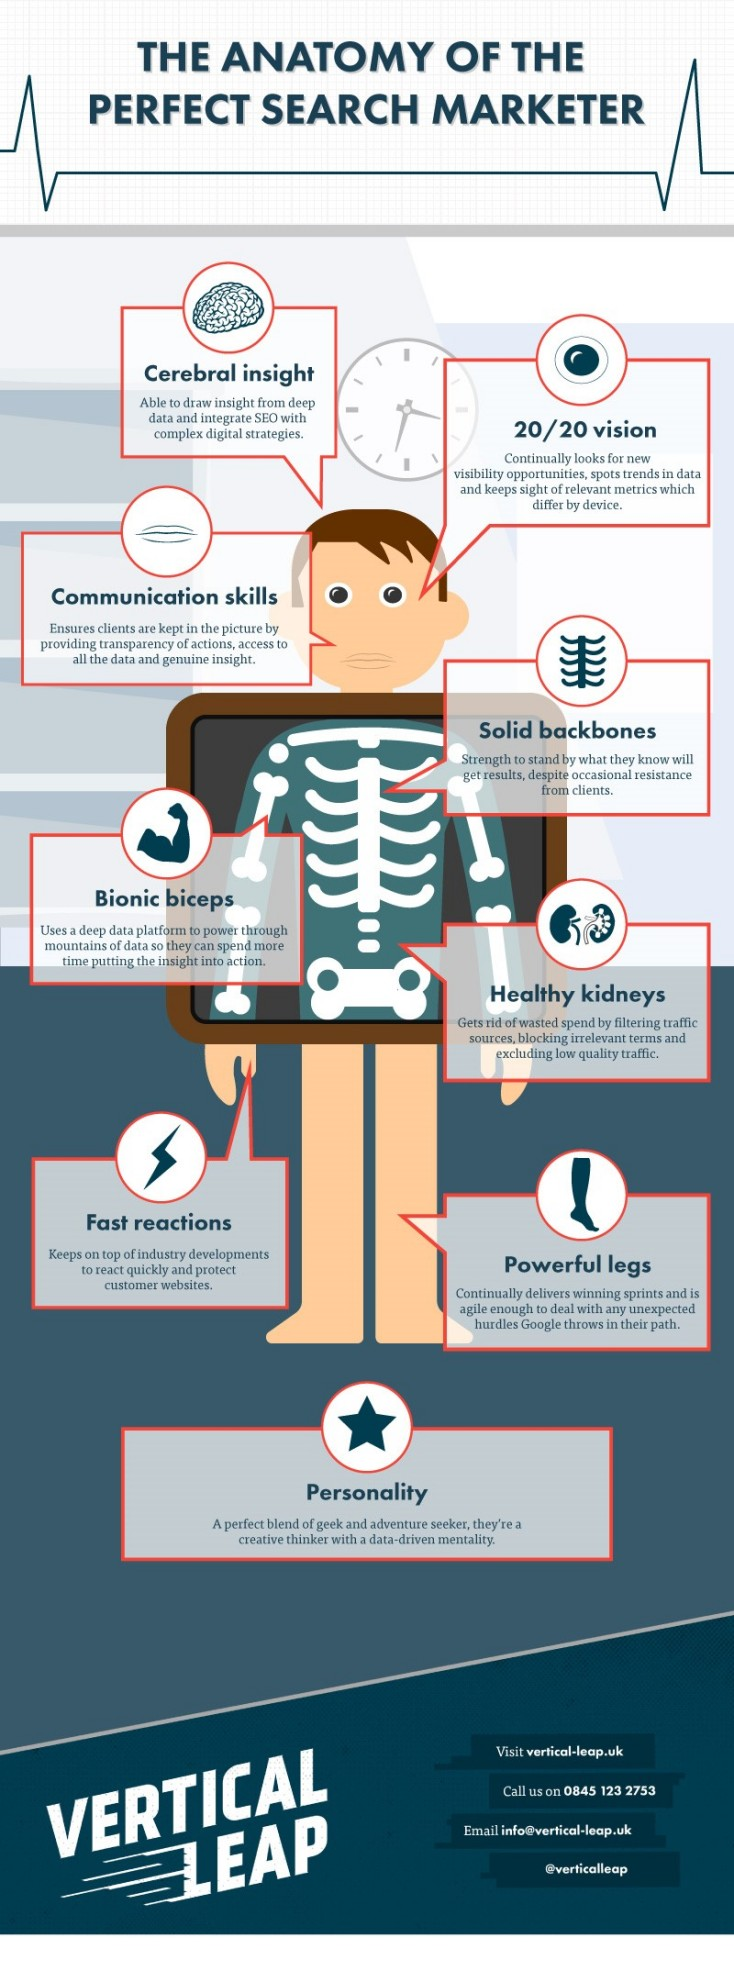 Anatomy-of-the-perfect-search-marketer